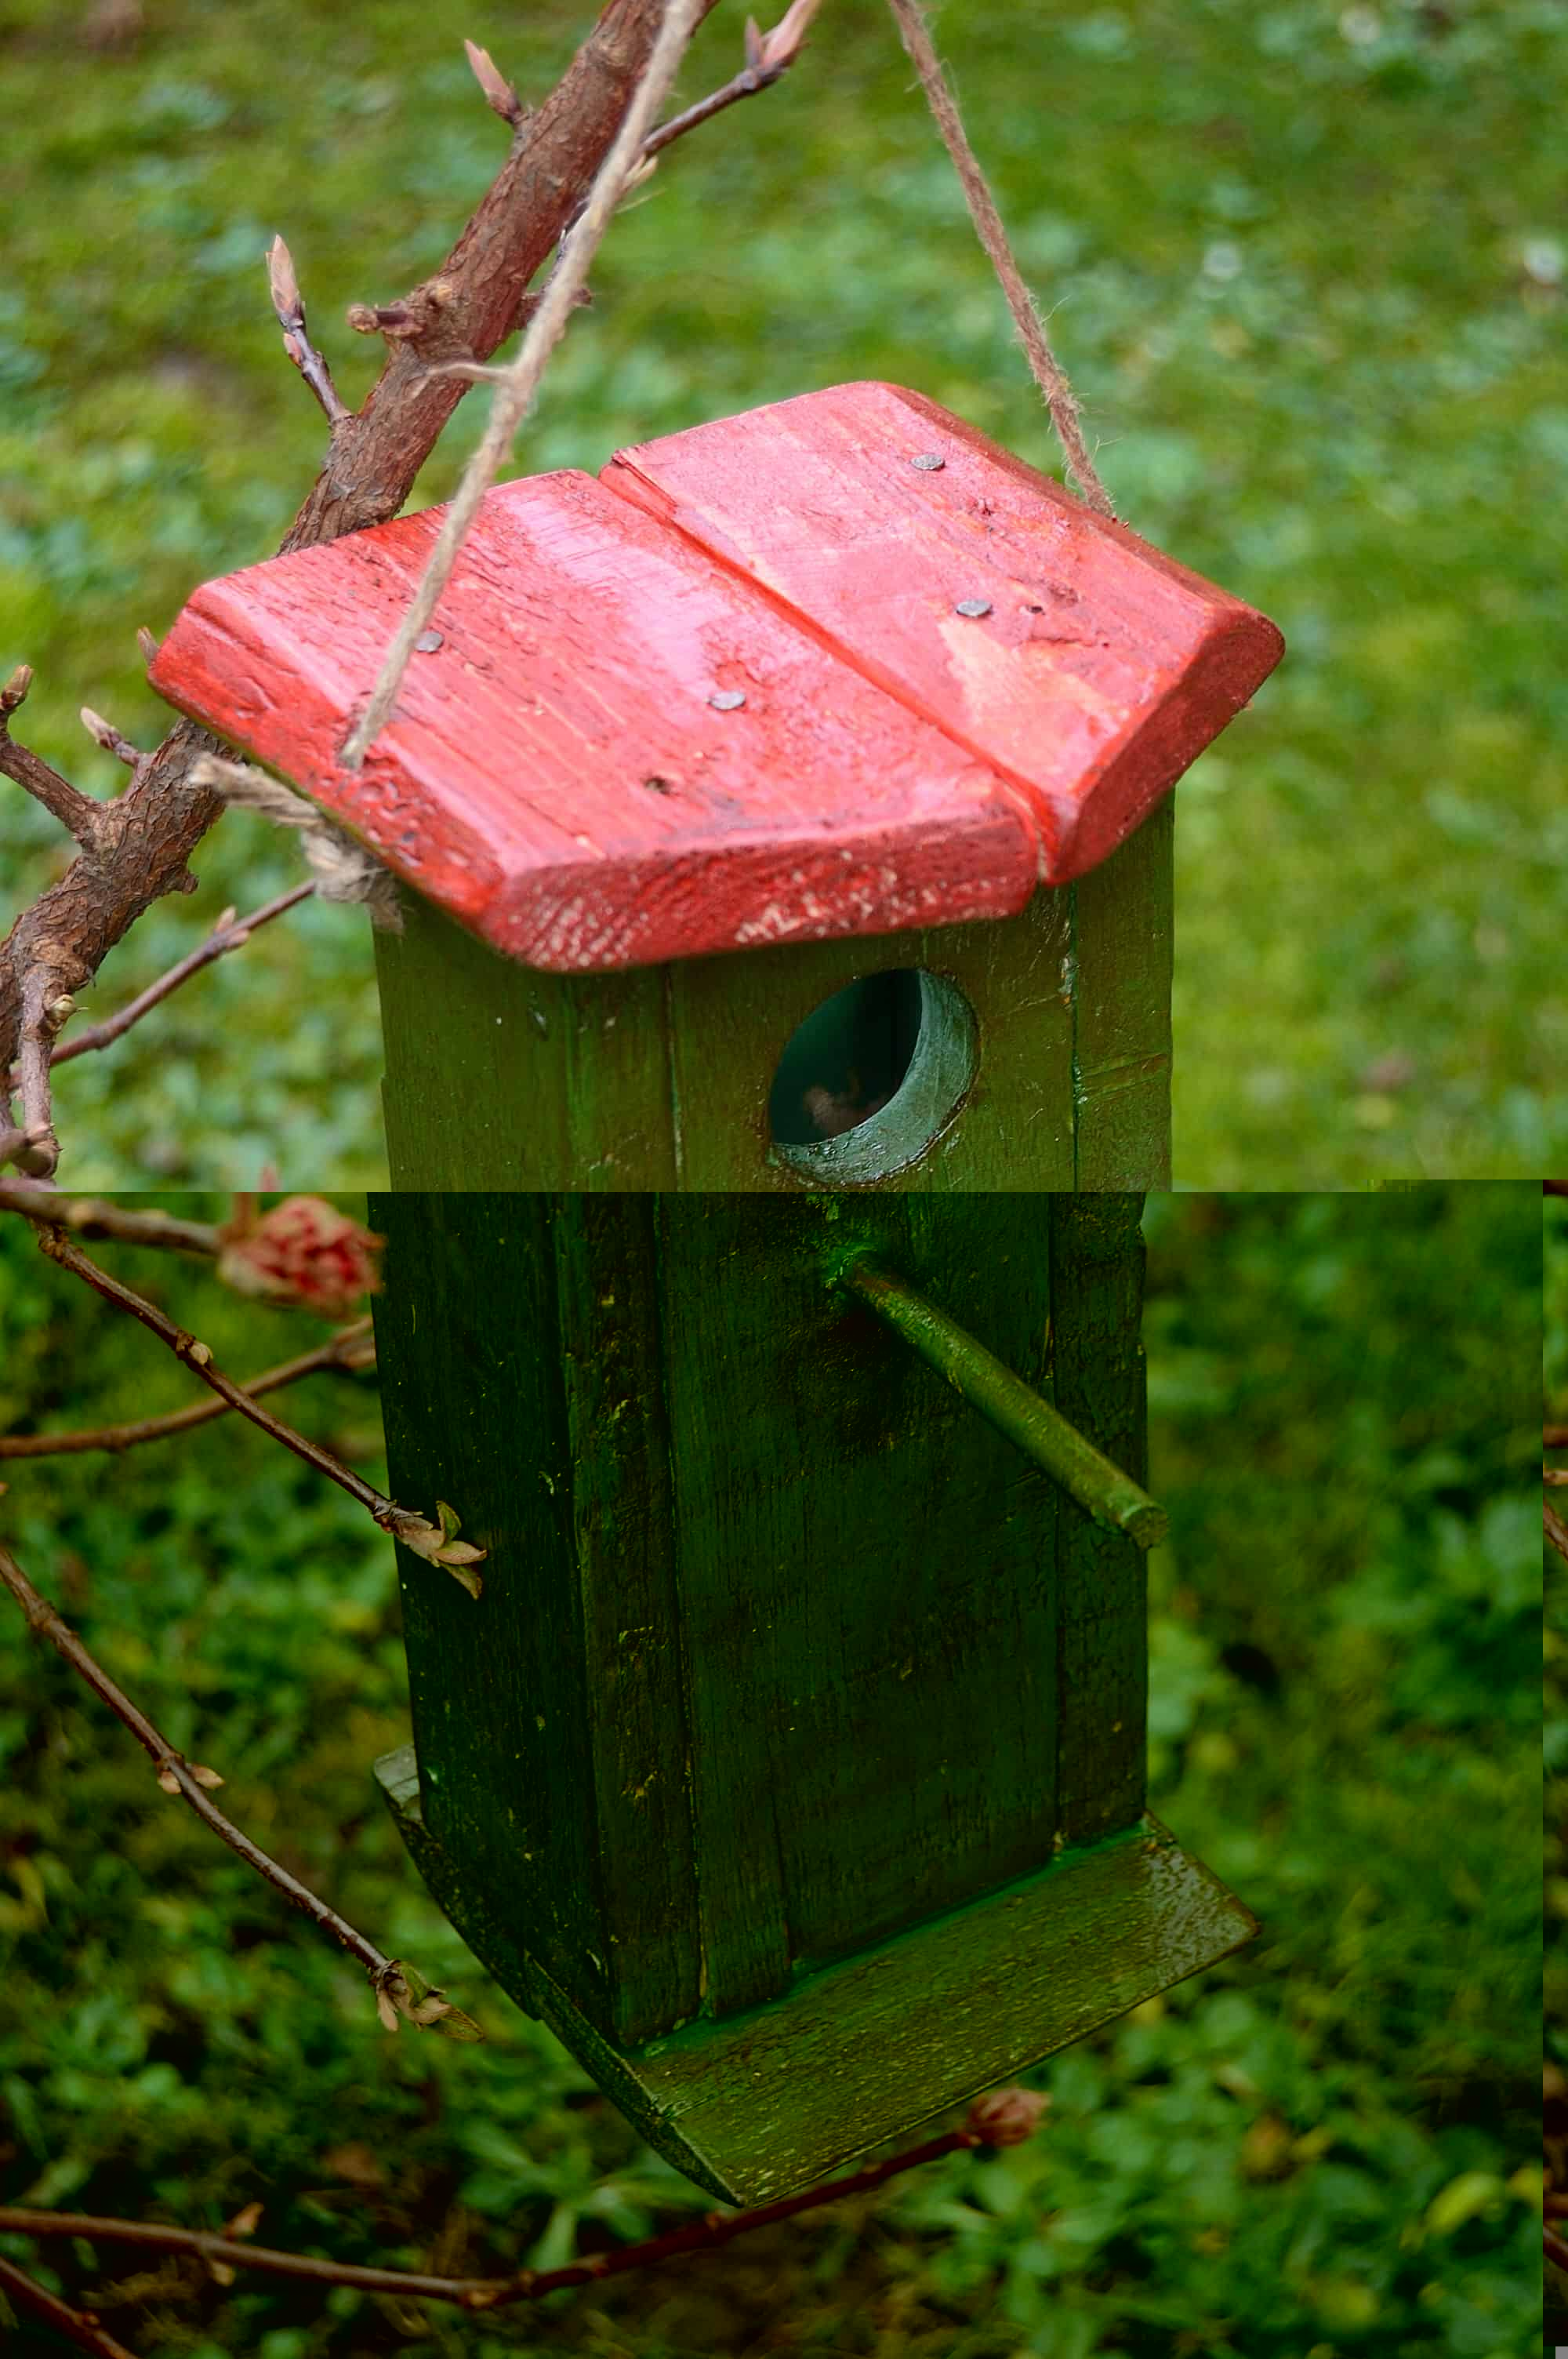 Birdhouse Made From Recycled Wooden Pallet - garden-pallet-projects-ideas, feeders-birdhouses